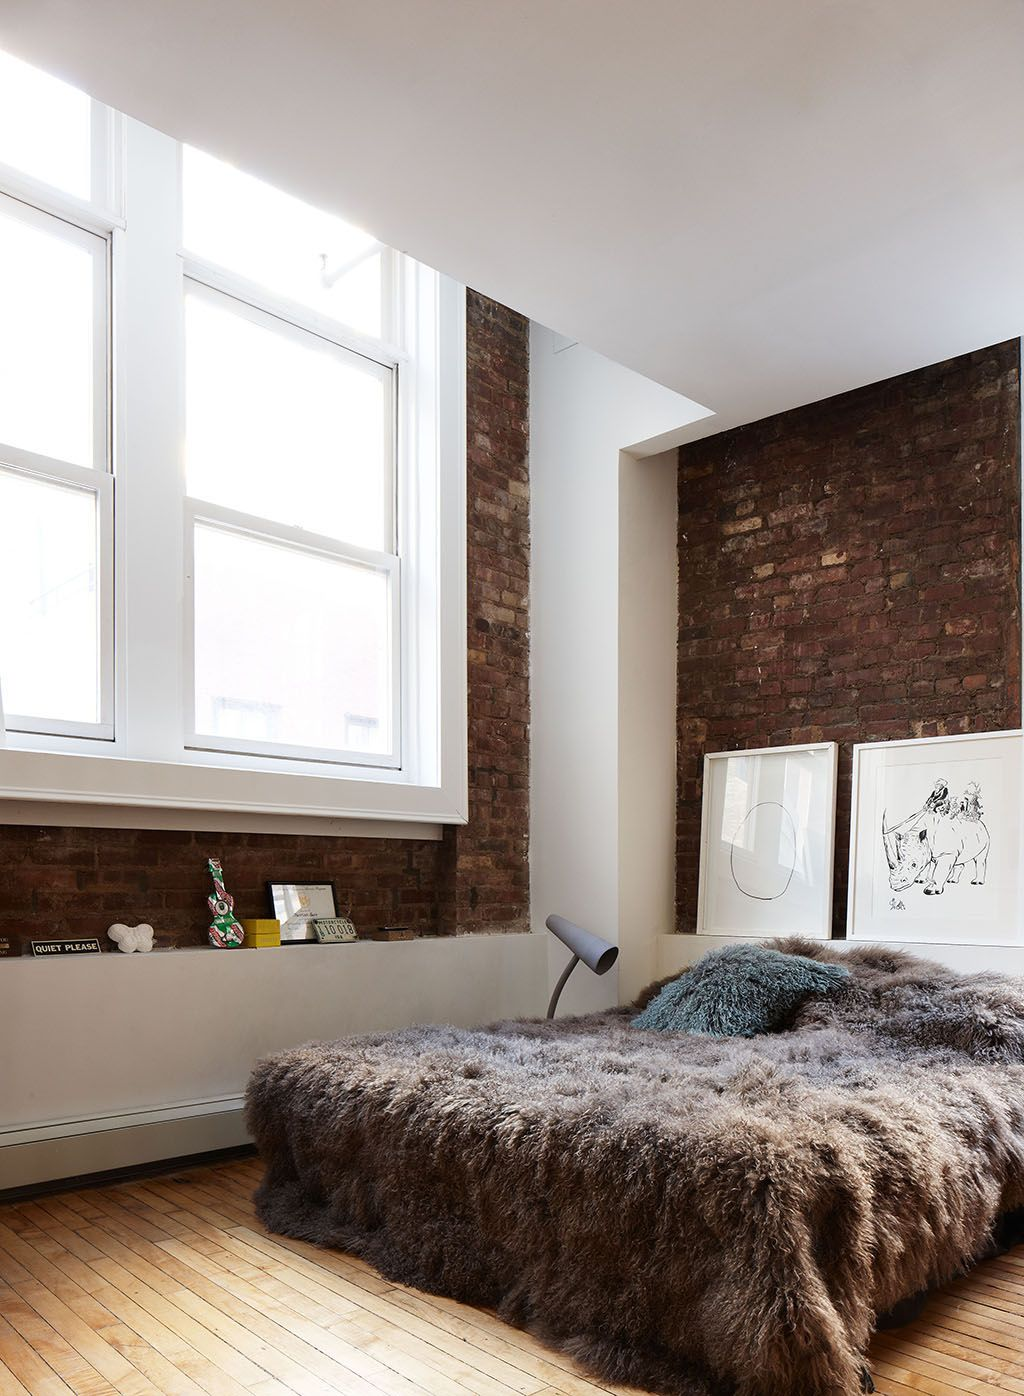 Bedroom with exposed brick and large windows